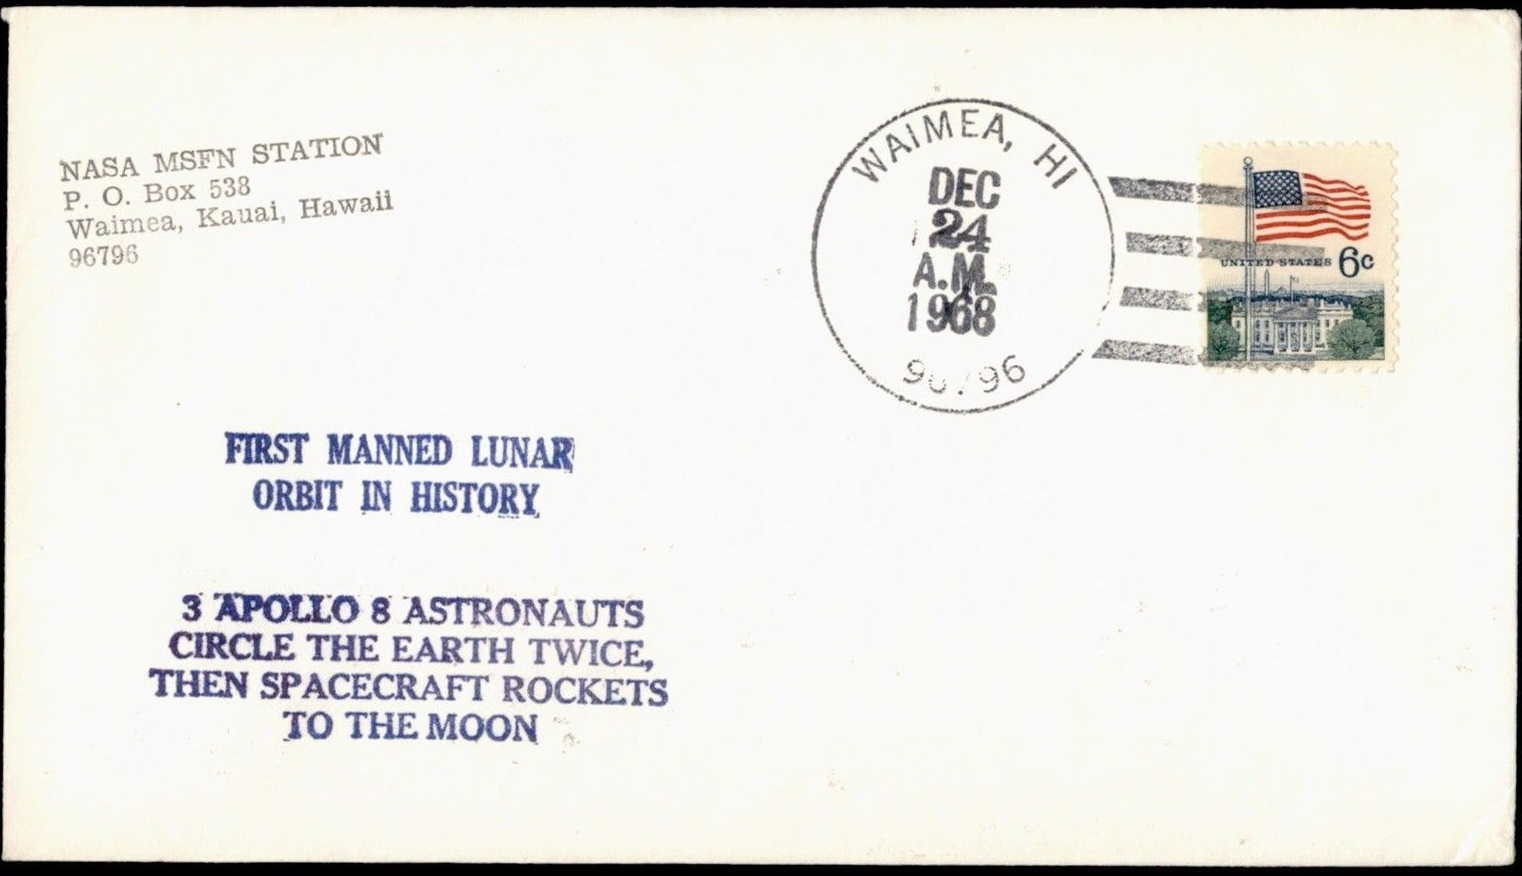 Cover marking Apollo 8's lunar orbit postmarked at NASA's MSFN tracking station at Waimea on Kauai island, Hawaii, December 24, 1968